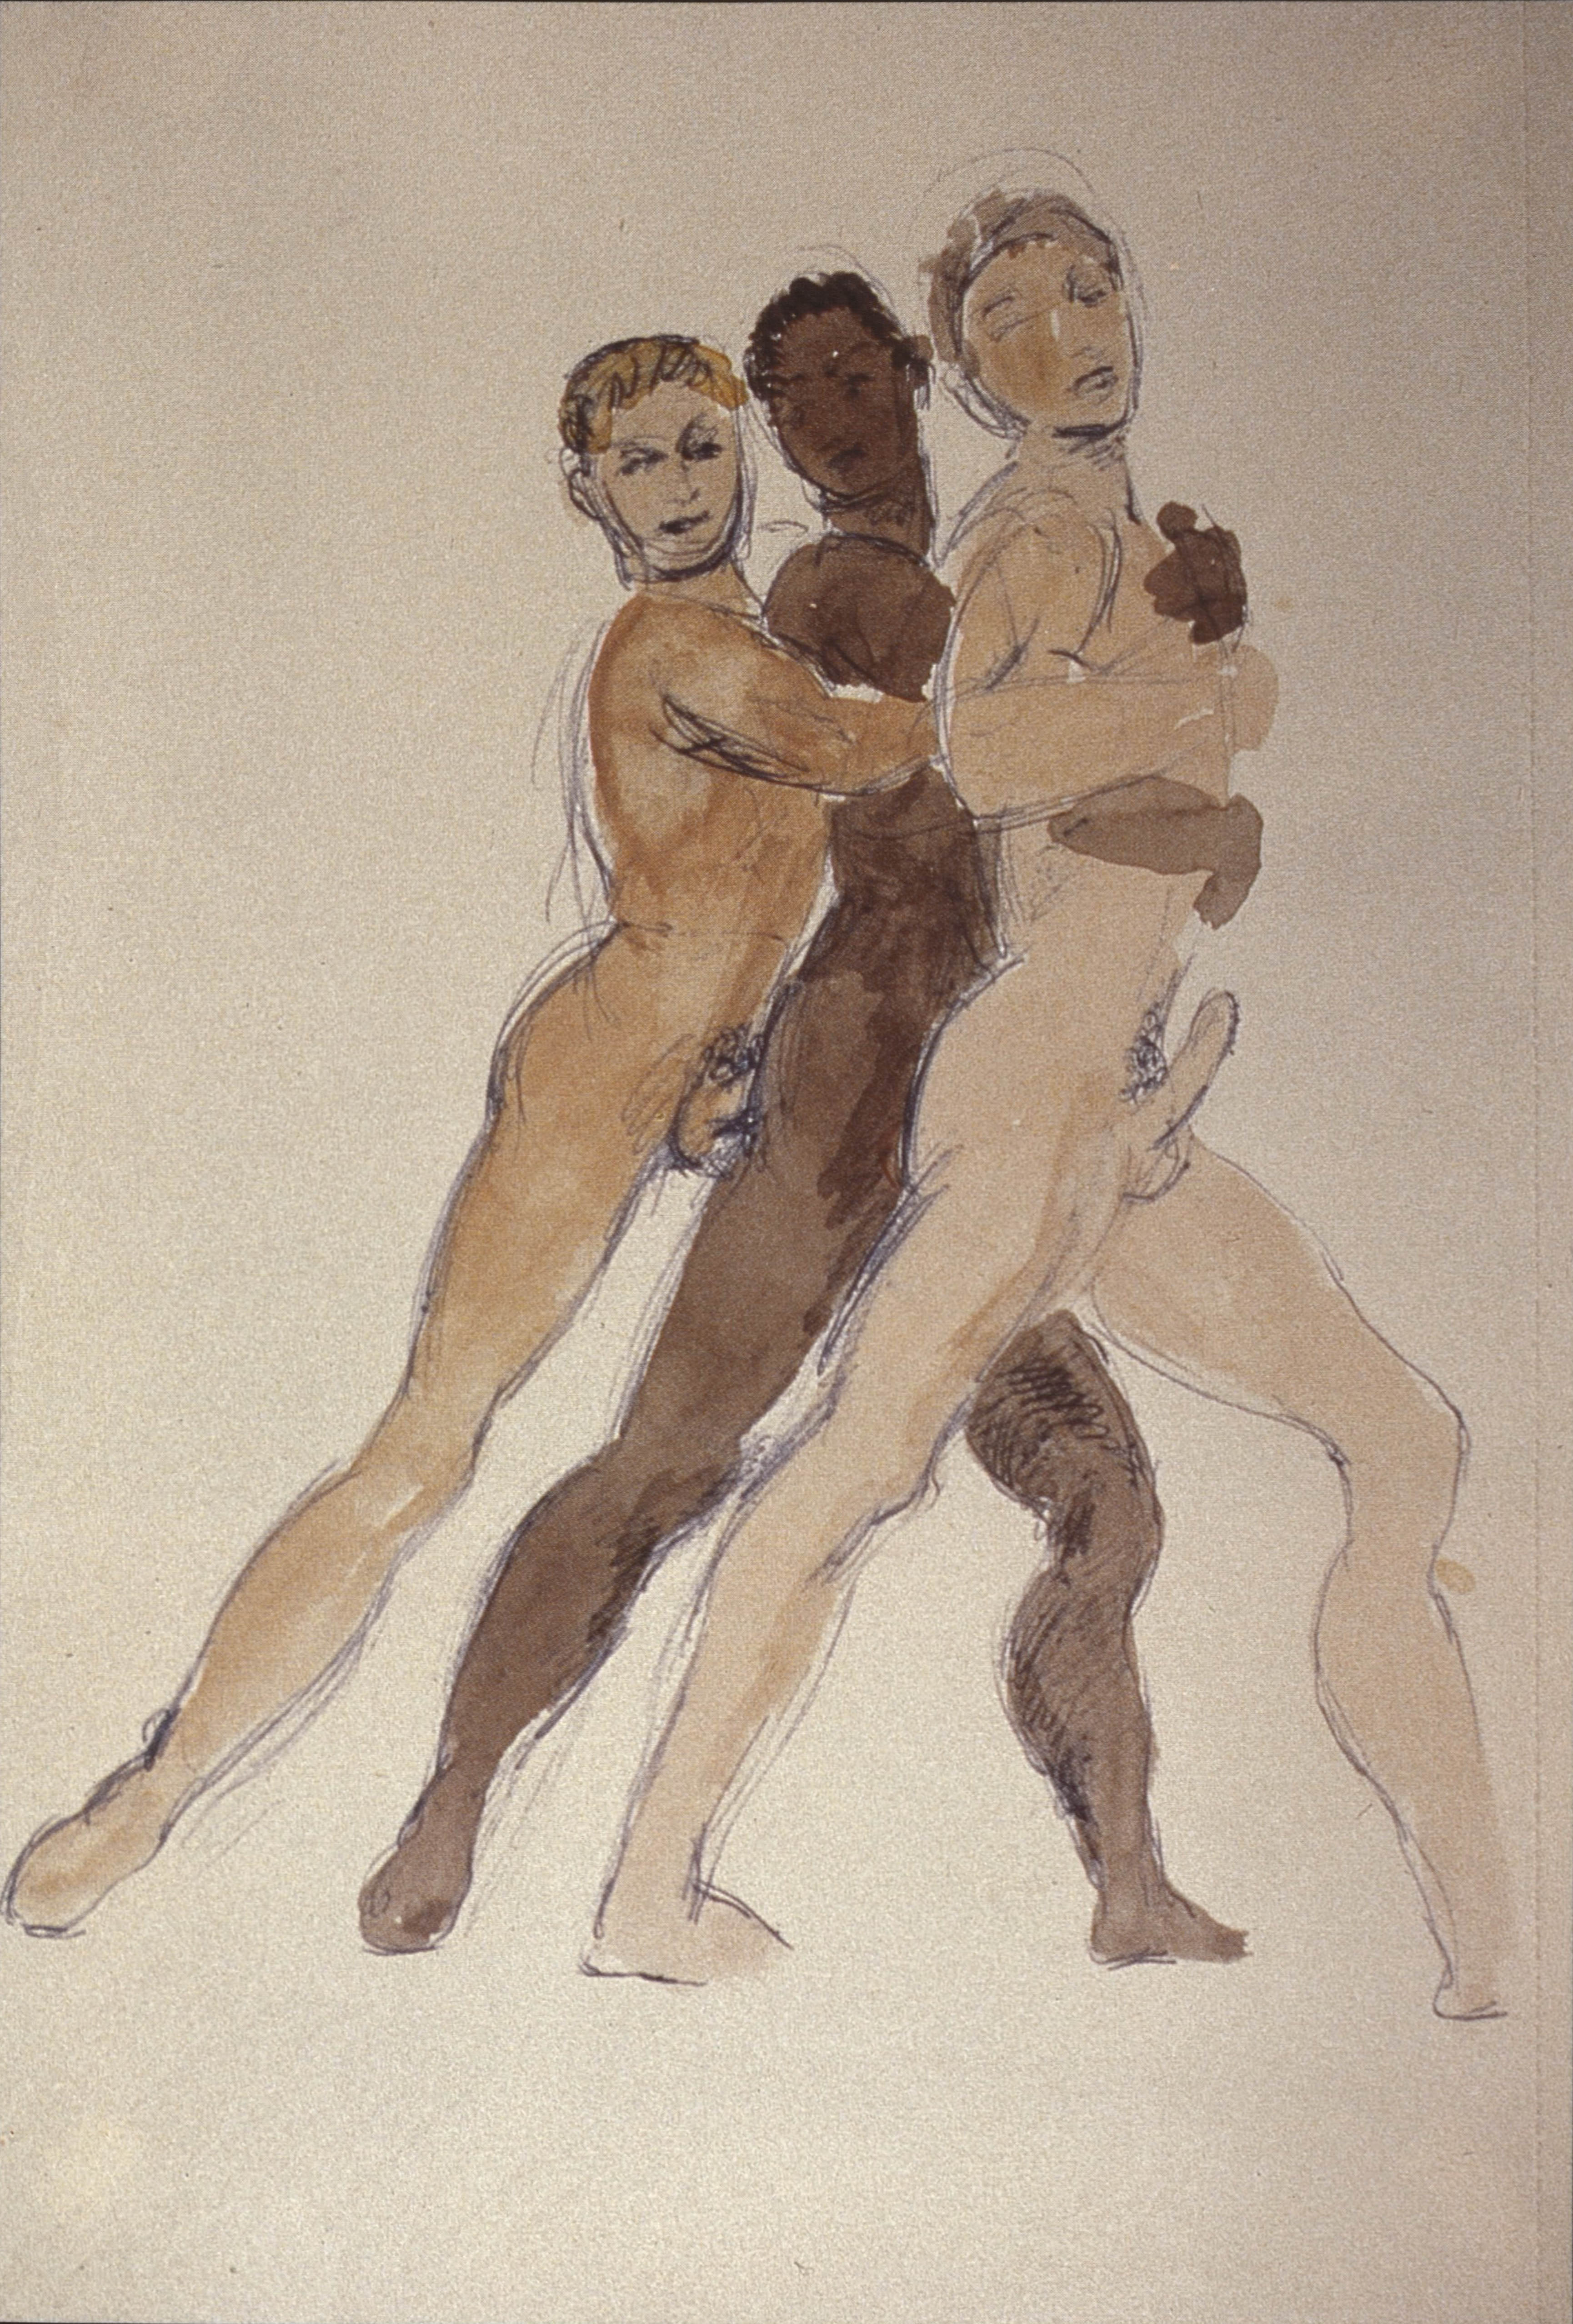 date unknown, ballpoint pen and watercolour on paper, 25 x 17 cm. Collection of John Whyte and Tom Wilson Weinberg, USA